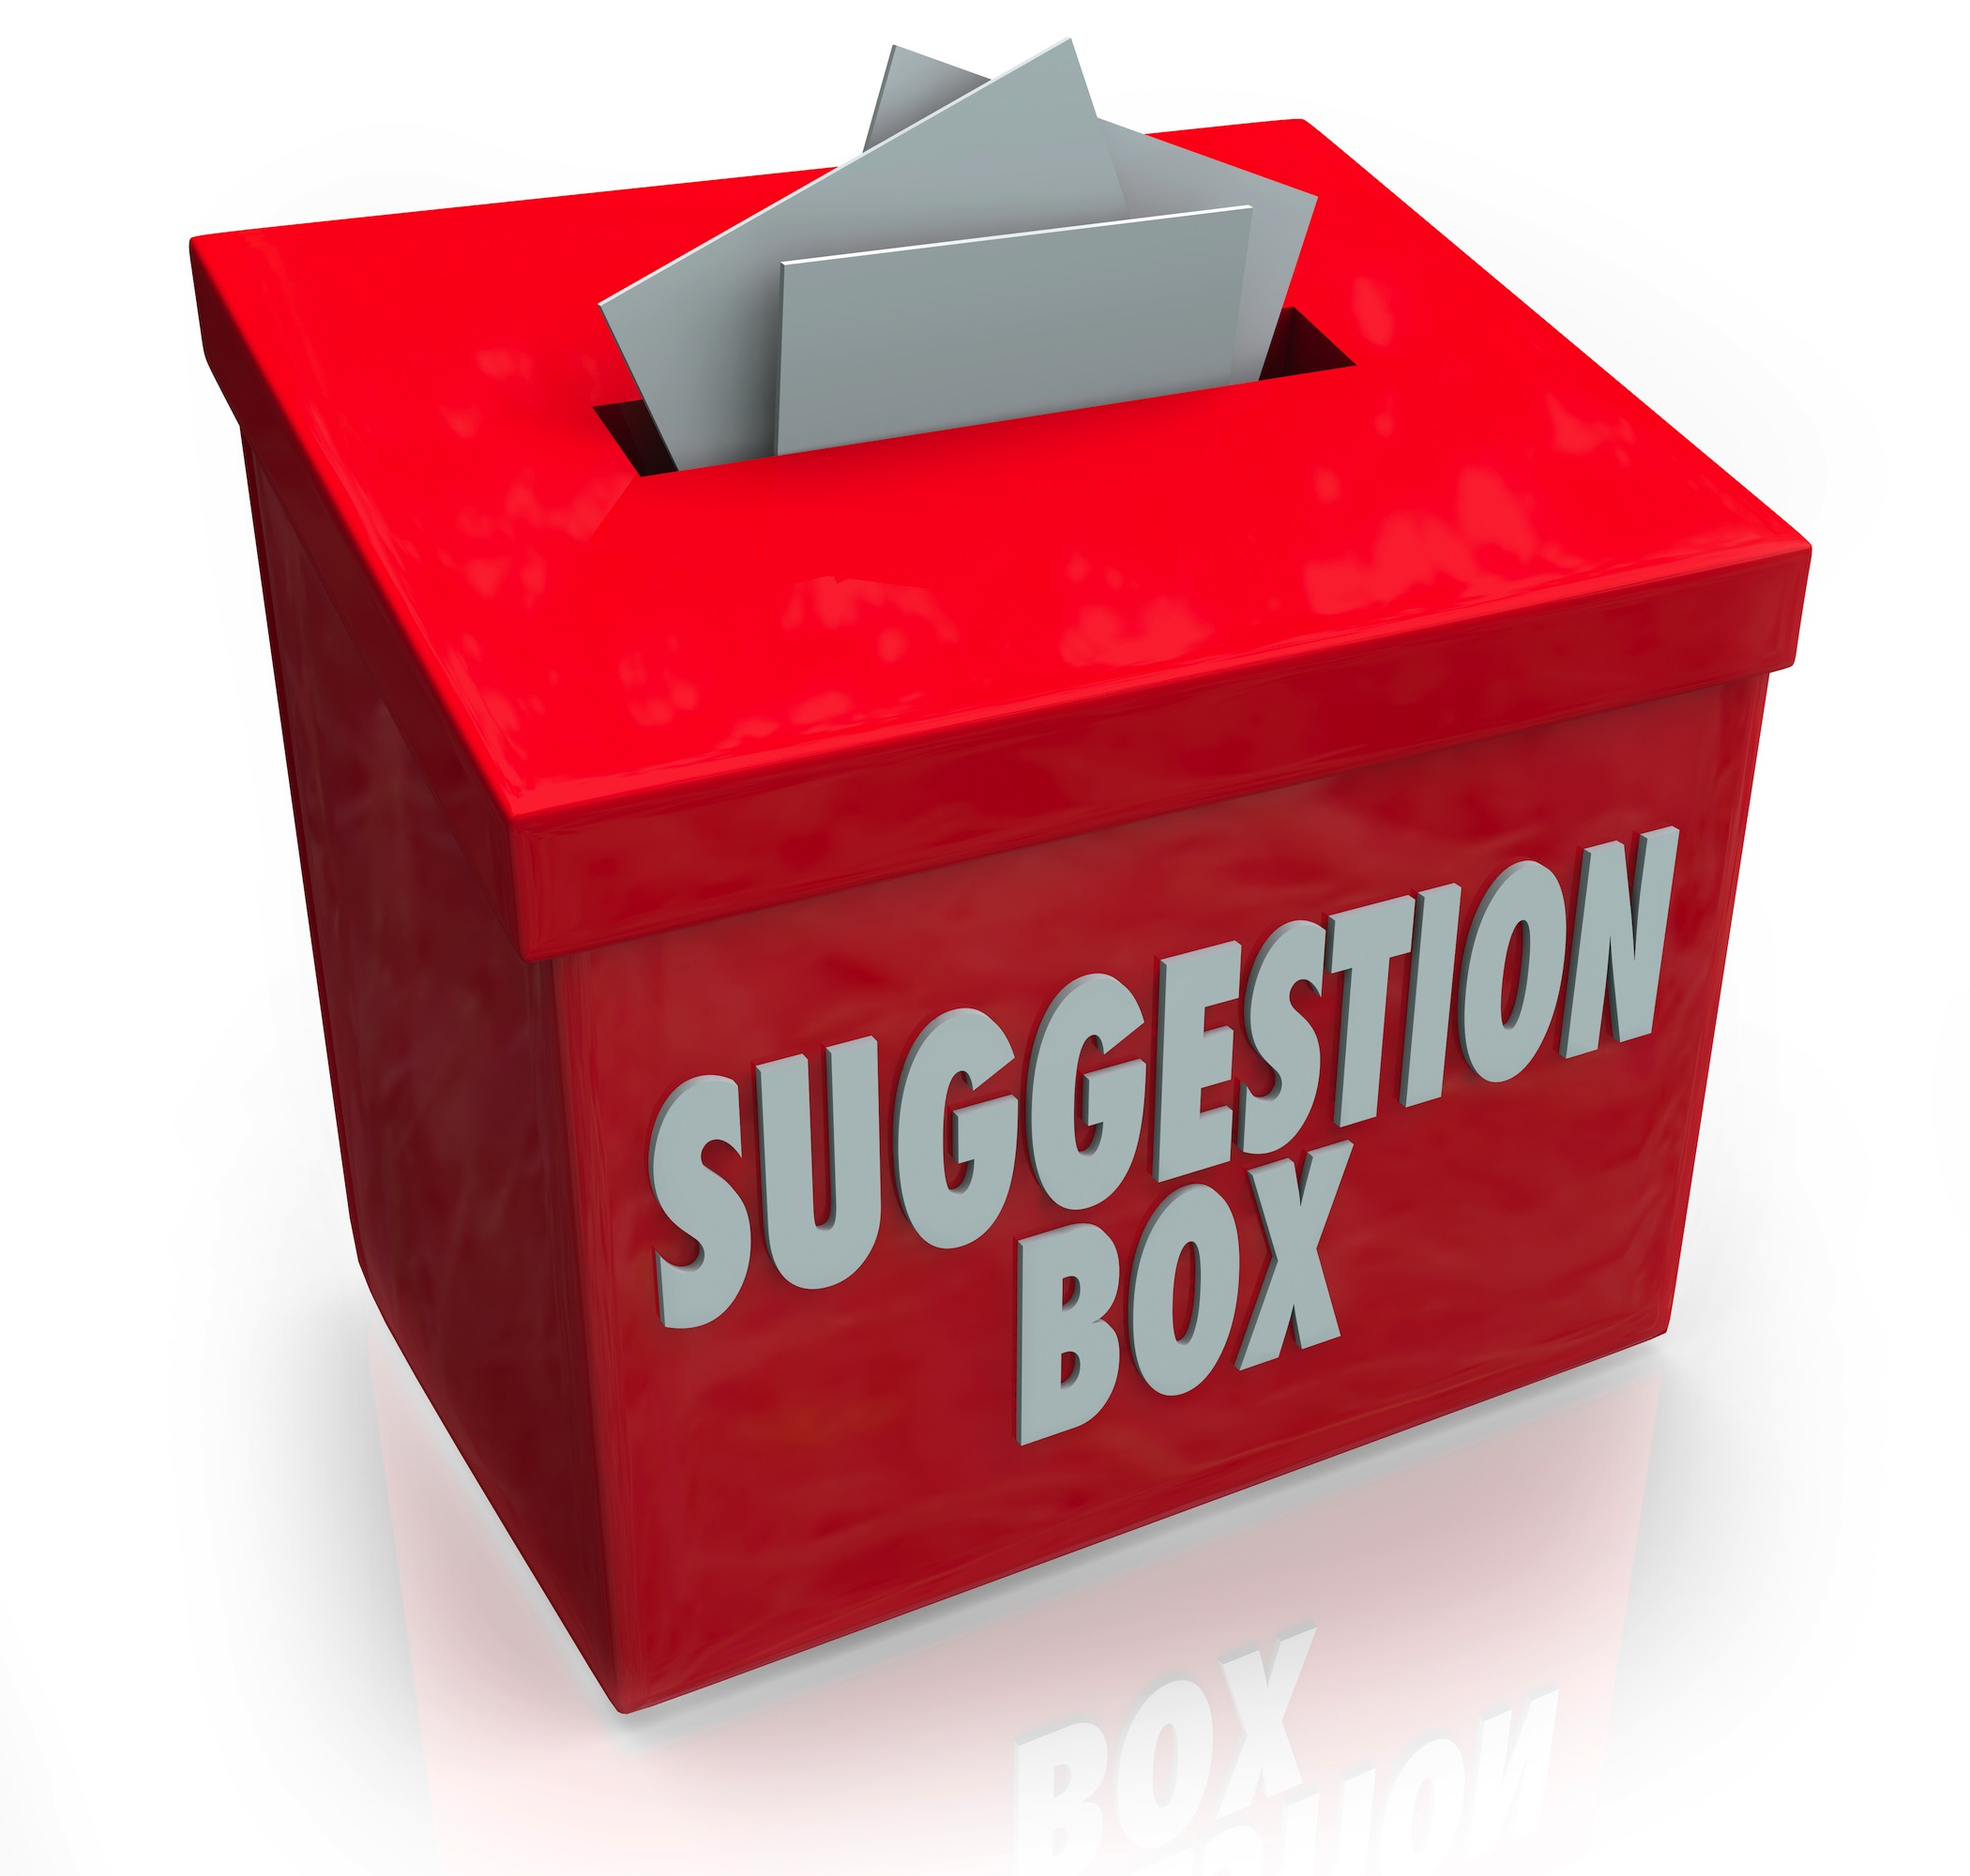 Illustration of a suggestion box